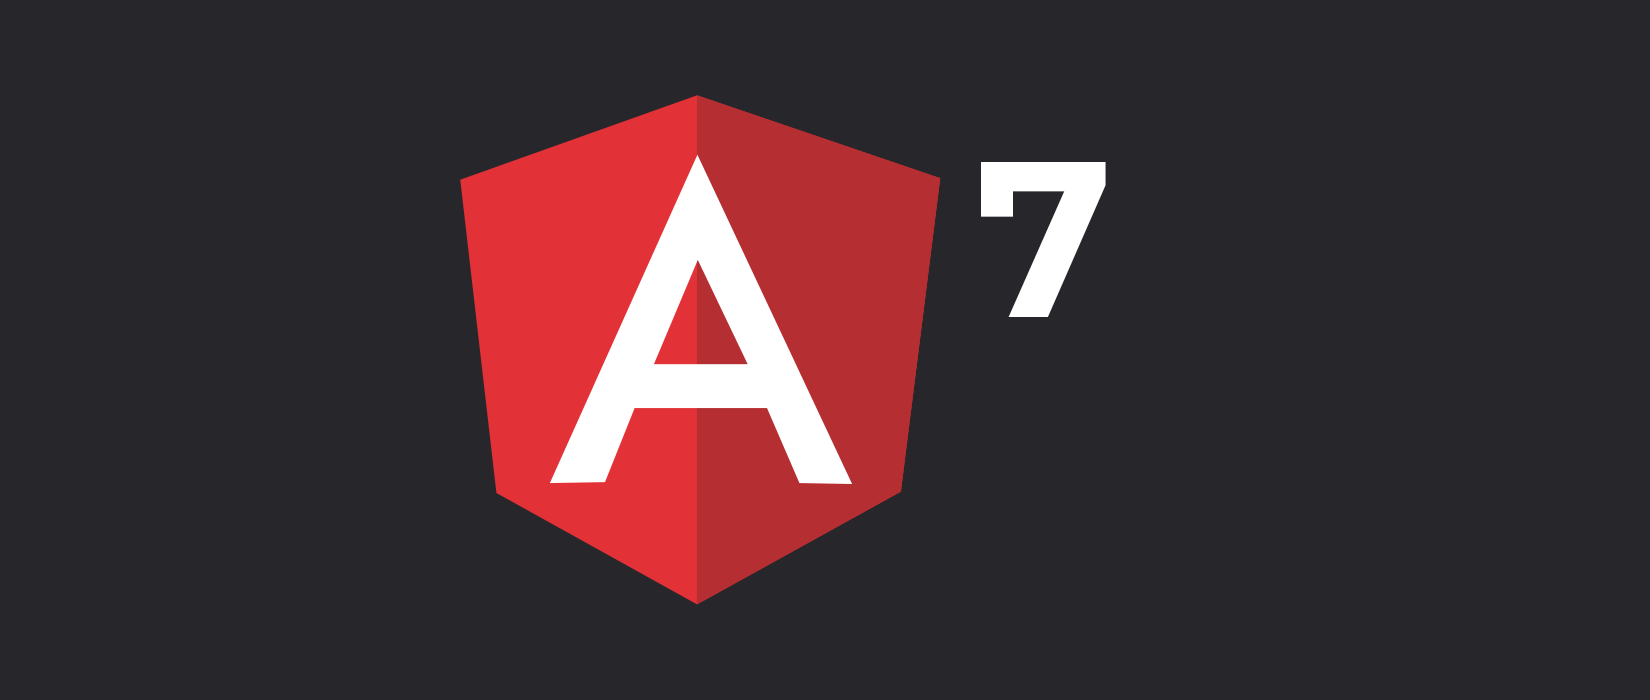 Everything you should know about Angular 7 - newest Release